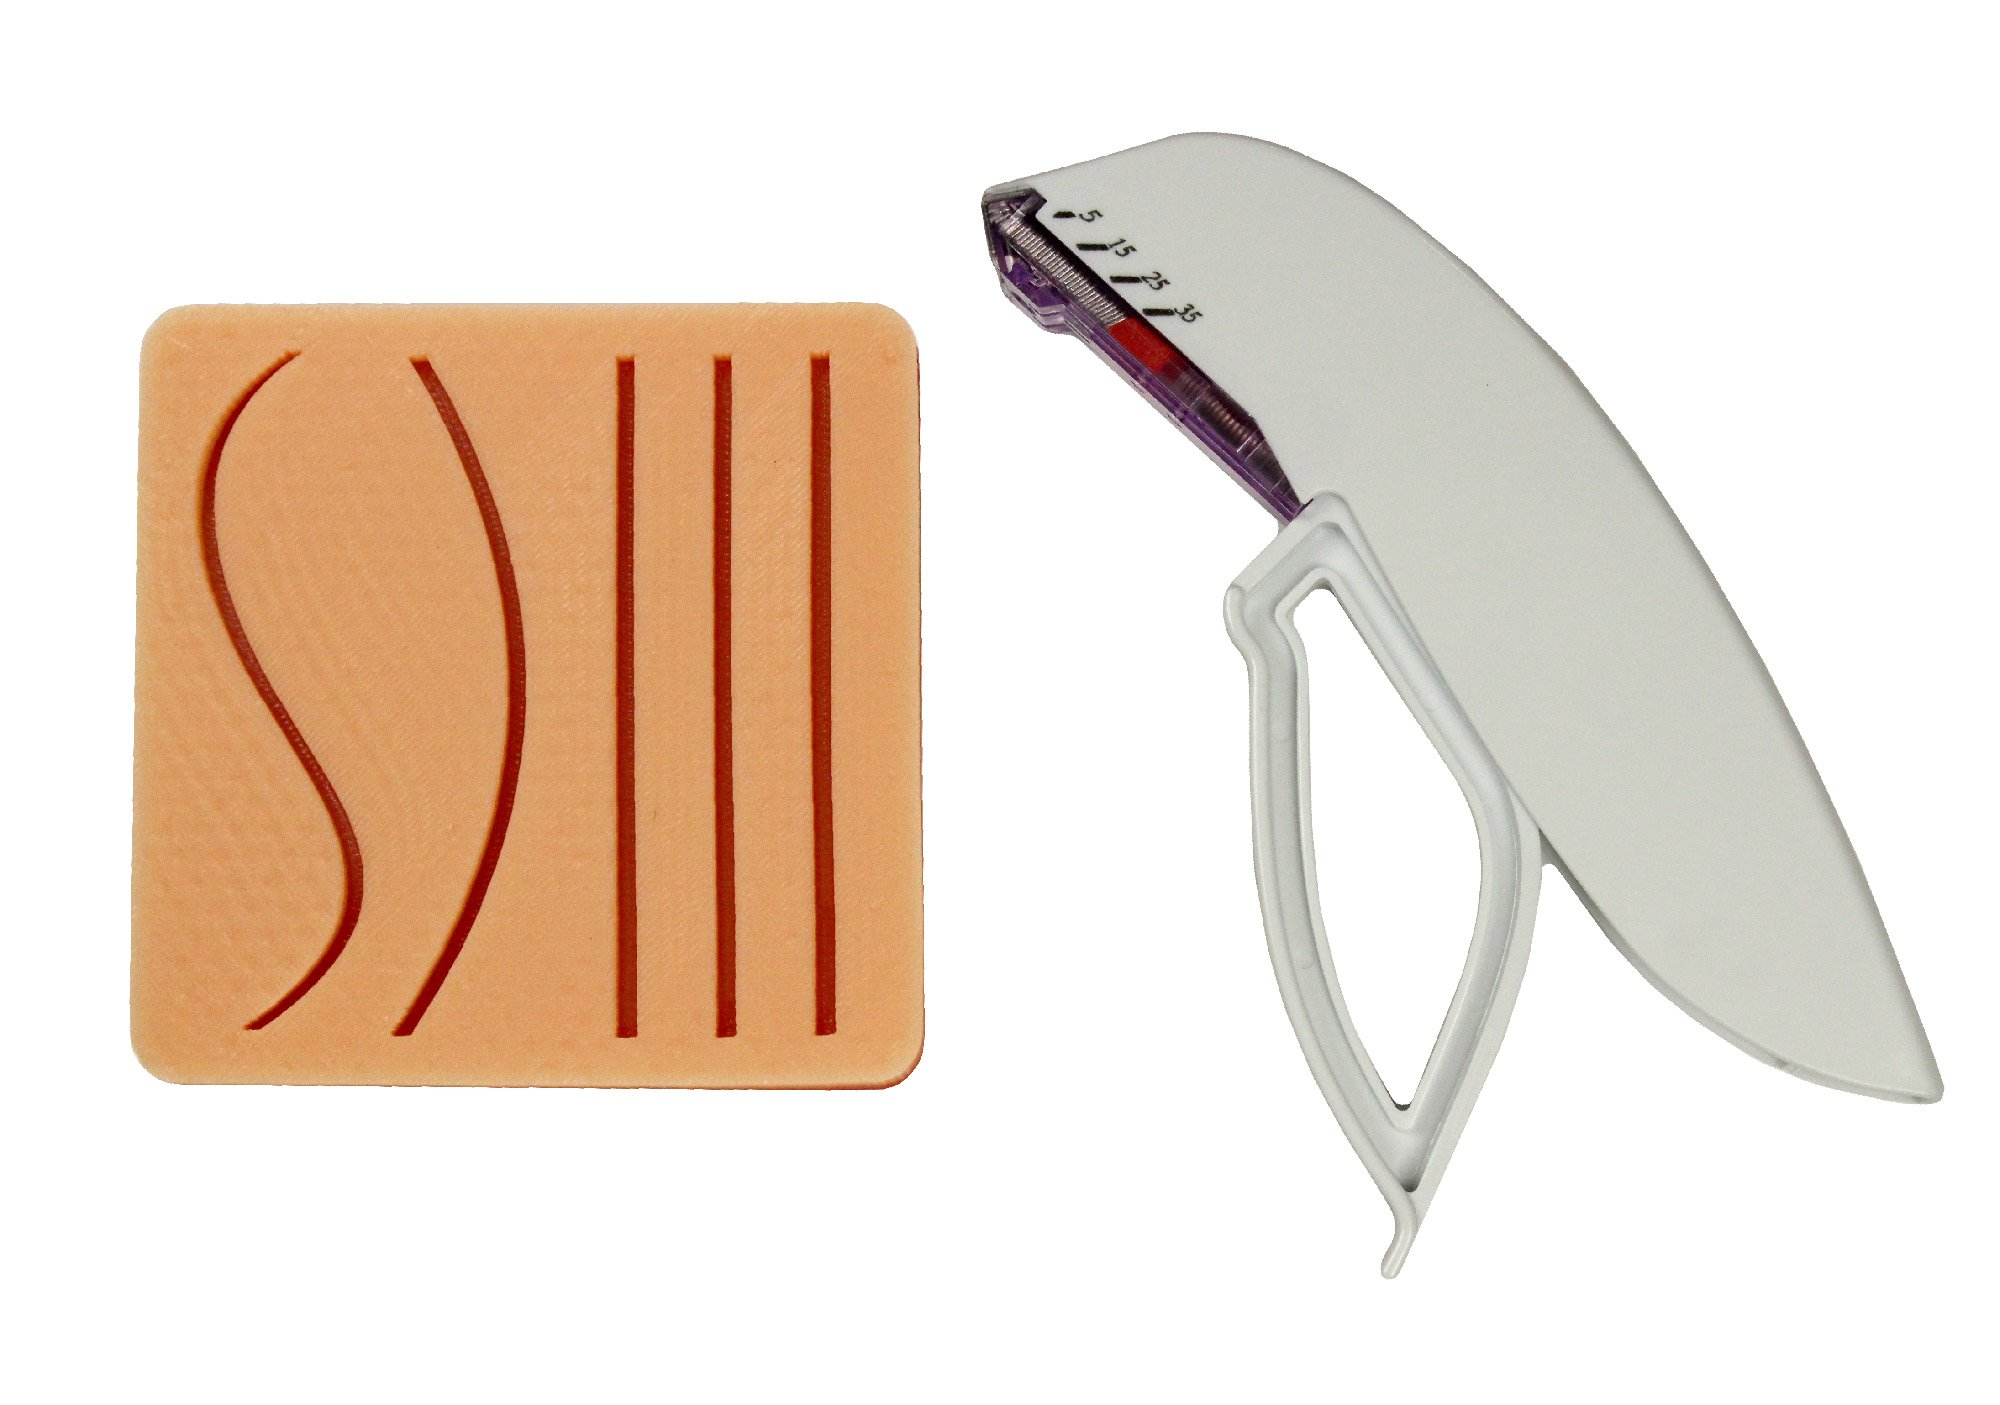 Medium 1-Layer Suture Pad with Practice Training Stapler by Your Design Medical